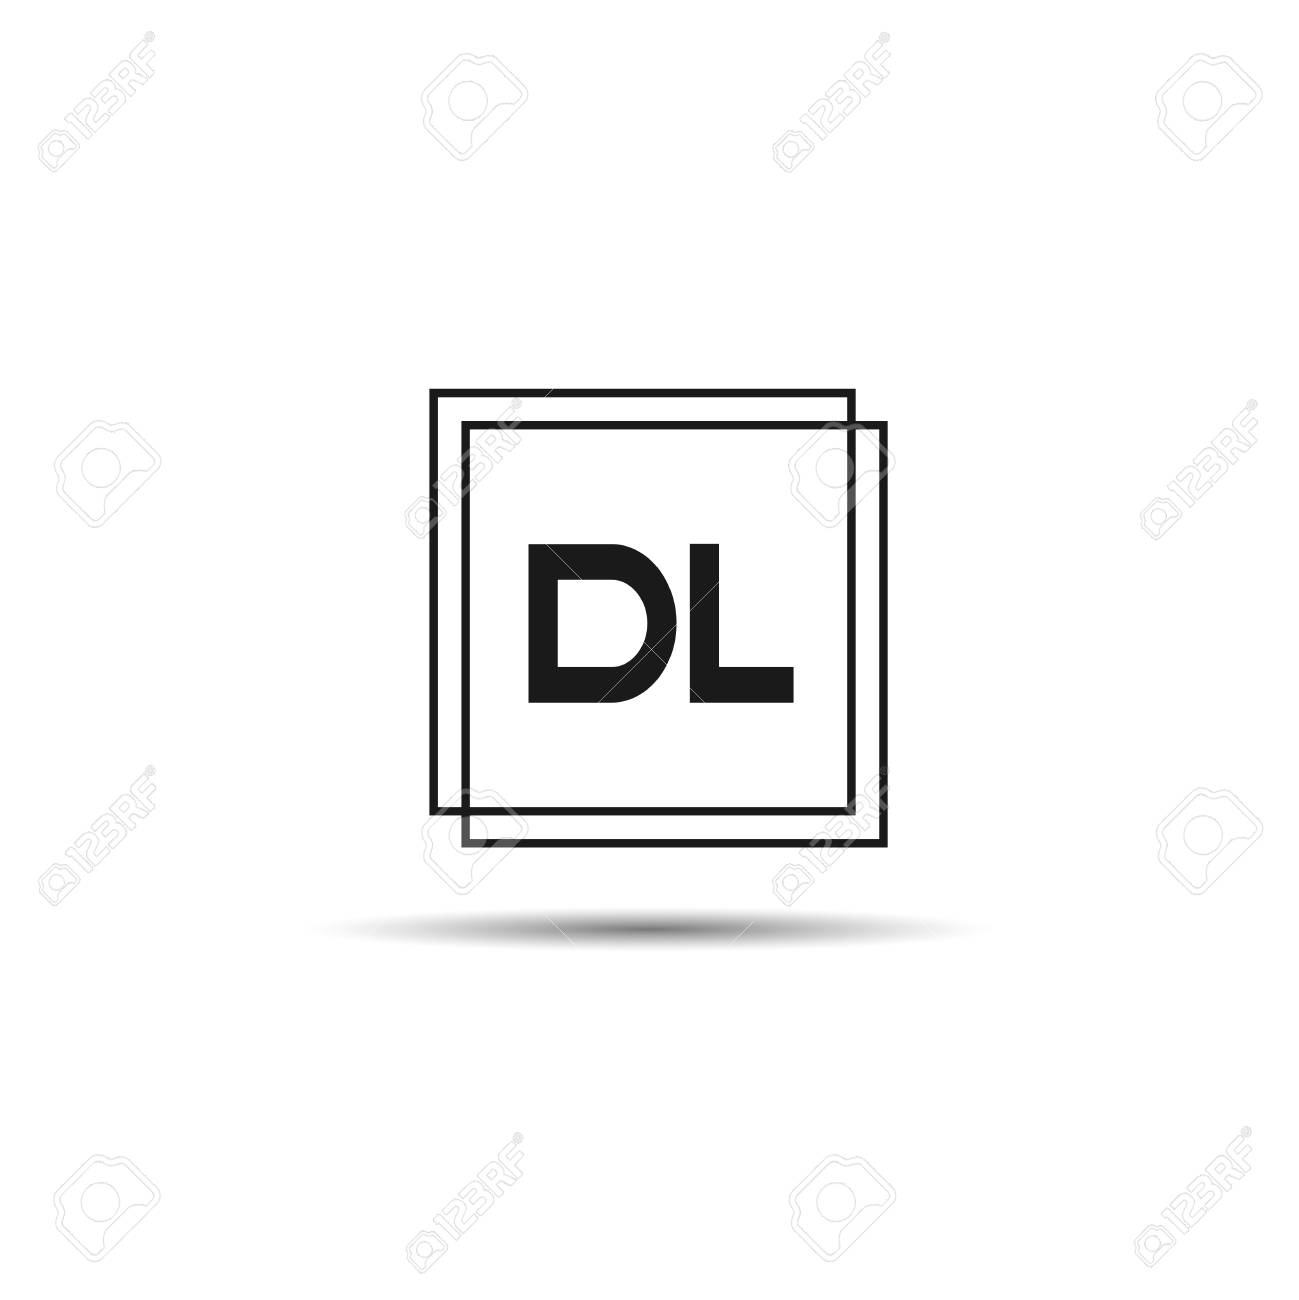 Initial Letter Dl Logo Template Design Royalty Free Cliparts Vectors And Stock Illustration Image 108056785